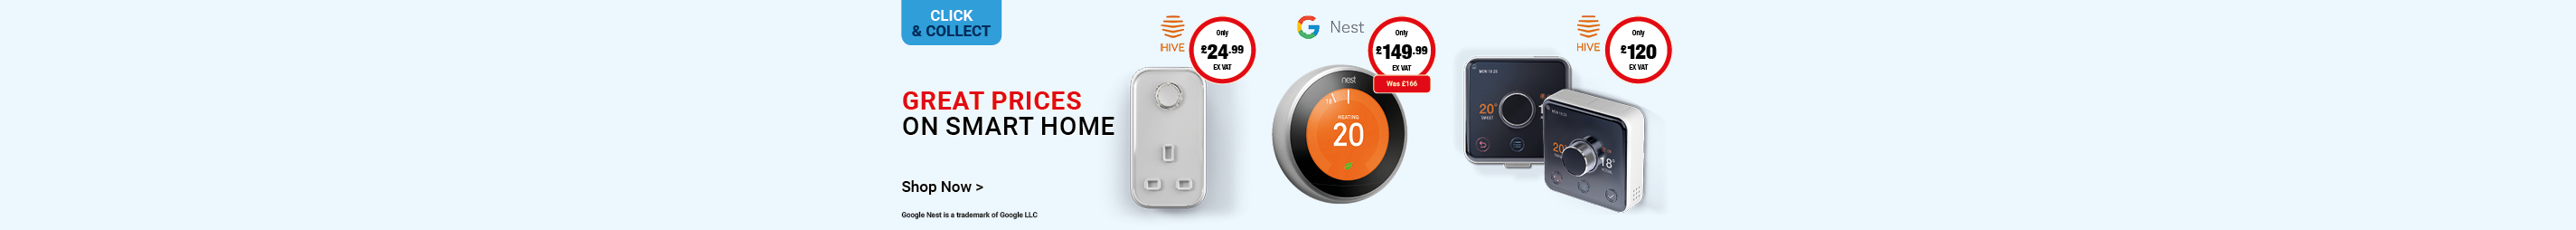 Great Prices on Smart Home